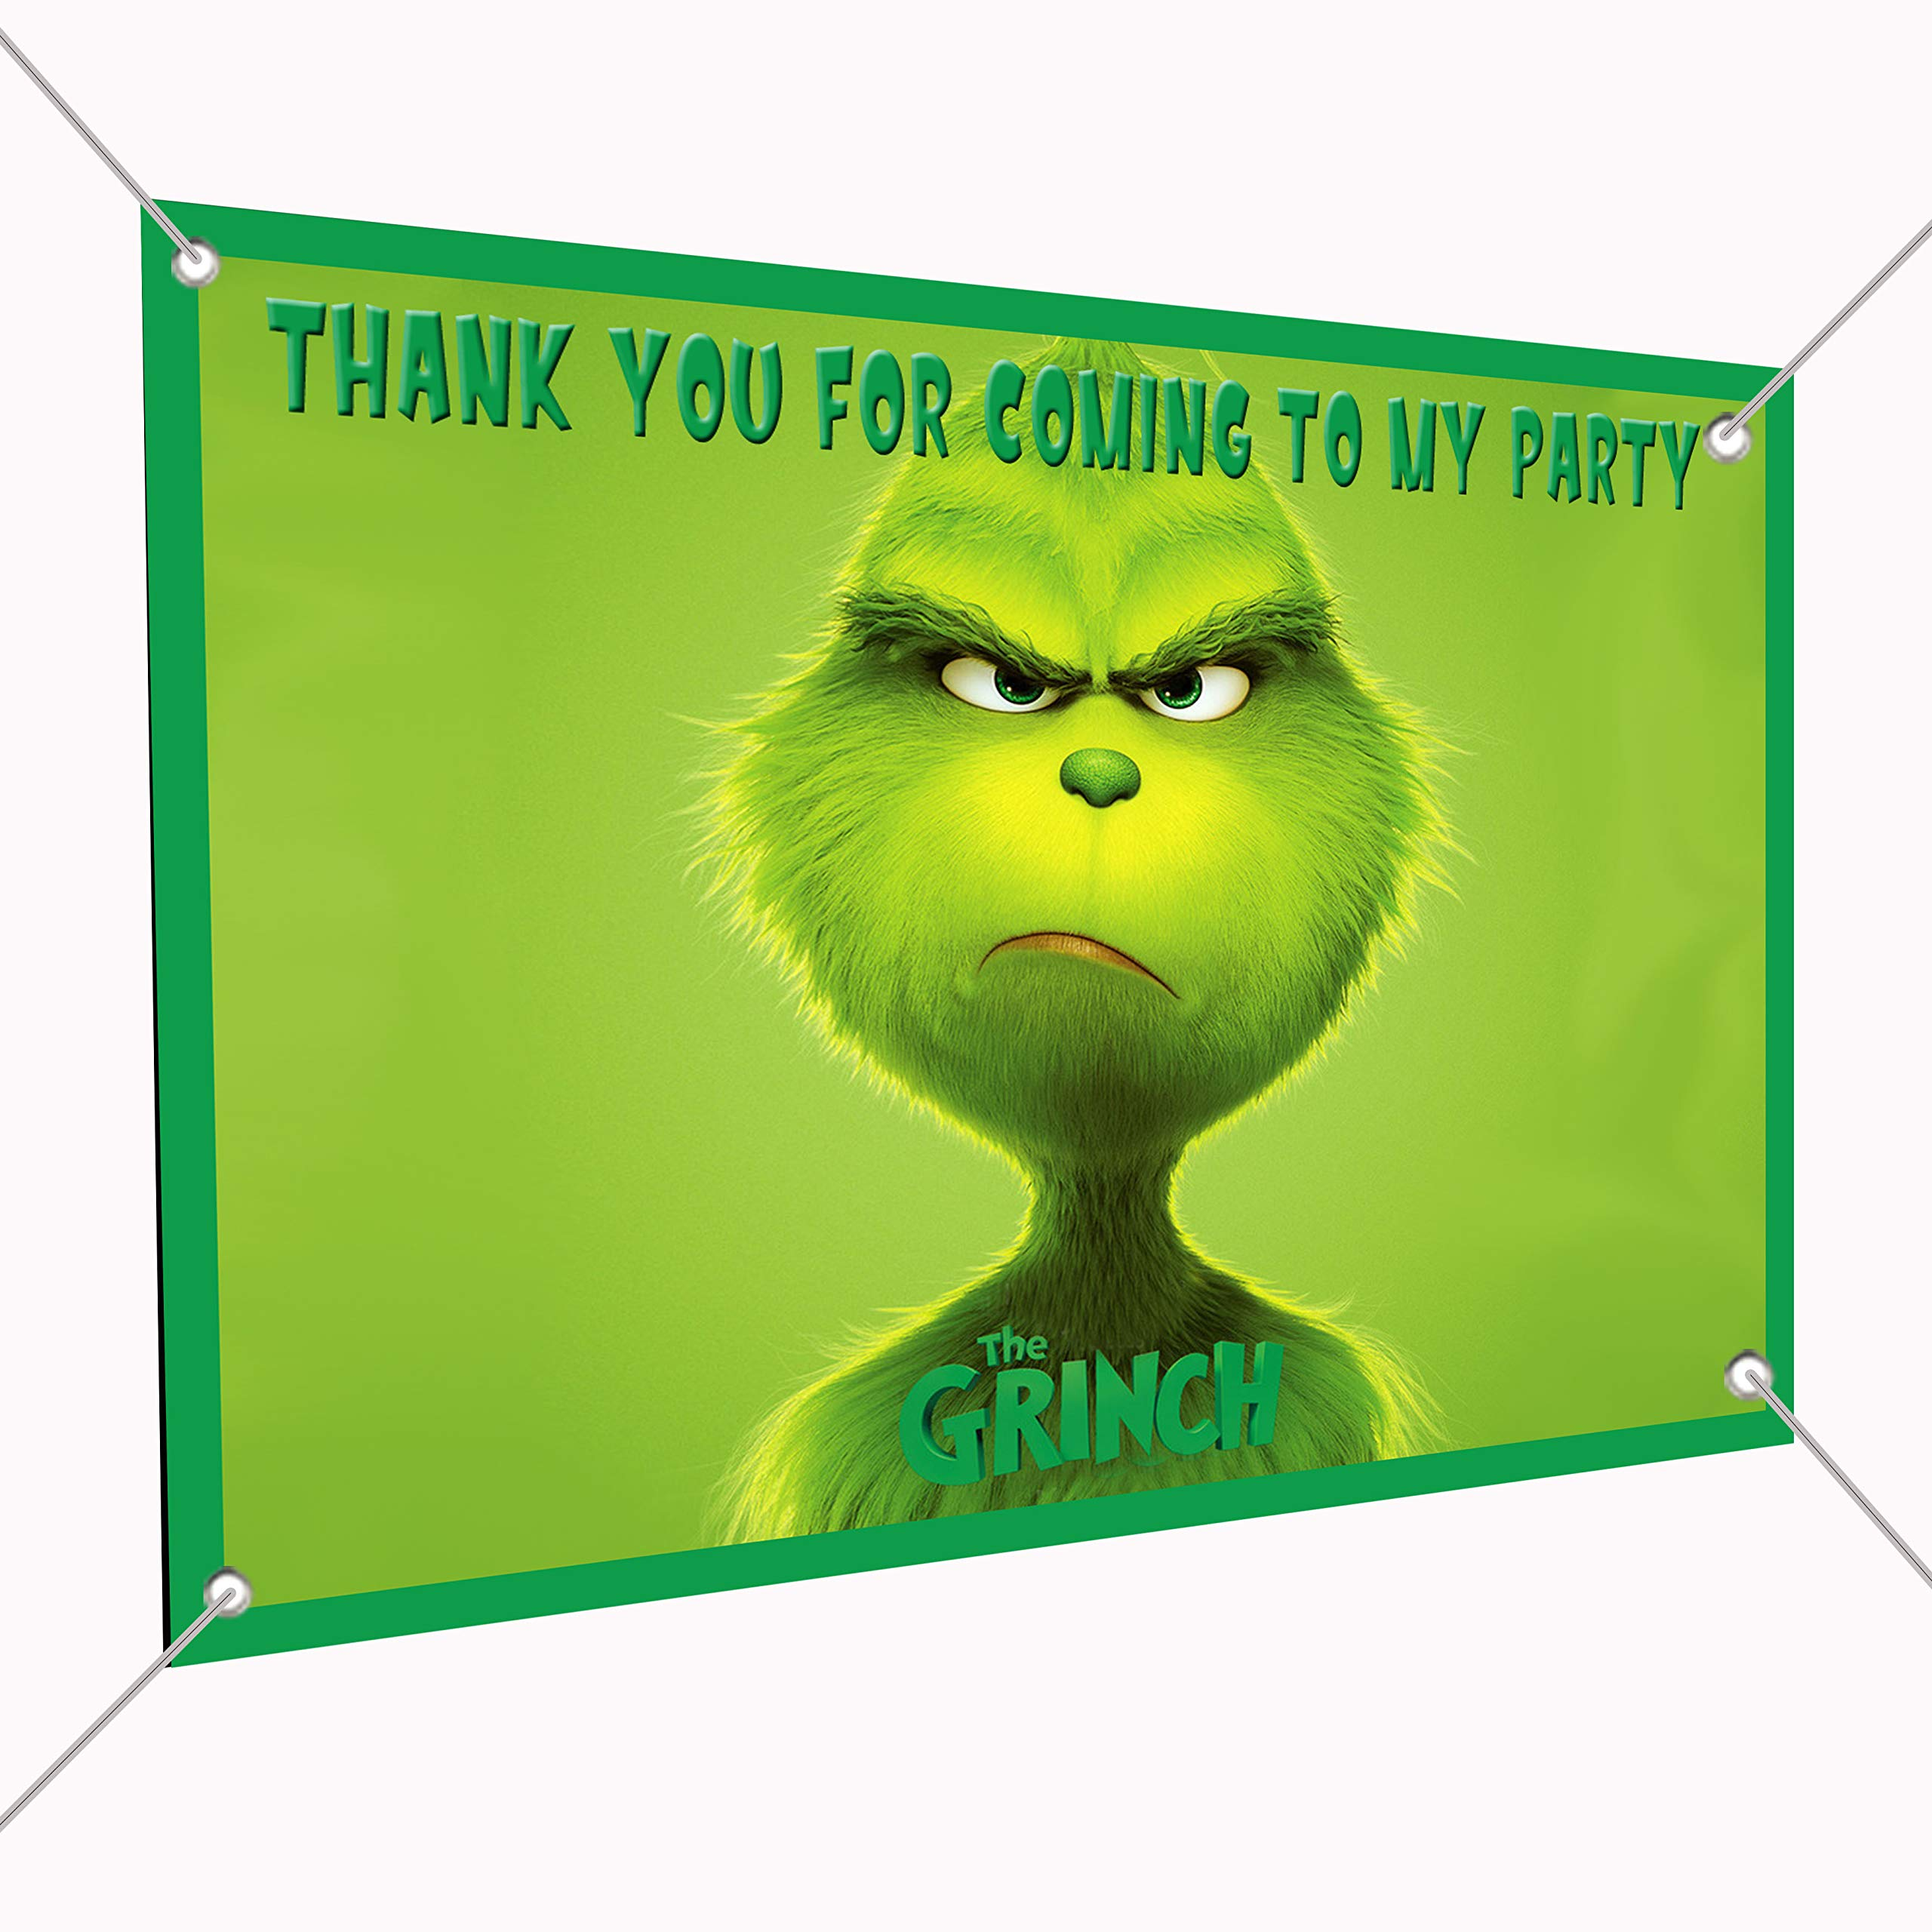 The Grinch Movie Banner Large Vinyl Indoor or Outdoor Banner - Sign Poster Backdrop, Party Favor Decoration, 30'' x 24'', 2.5' x 2' who Stole Christmas, Whoville, Dog Max, Cindy Lou Who